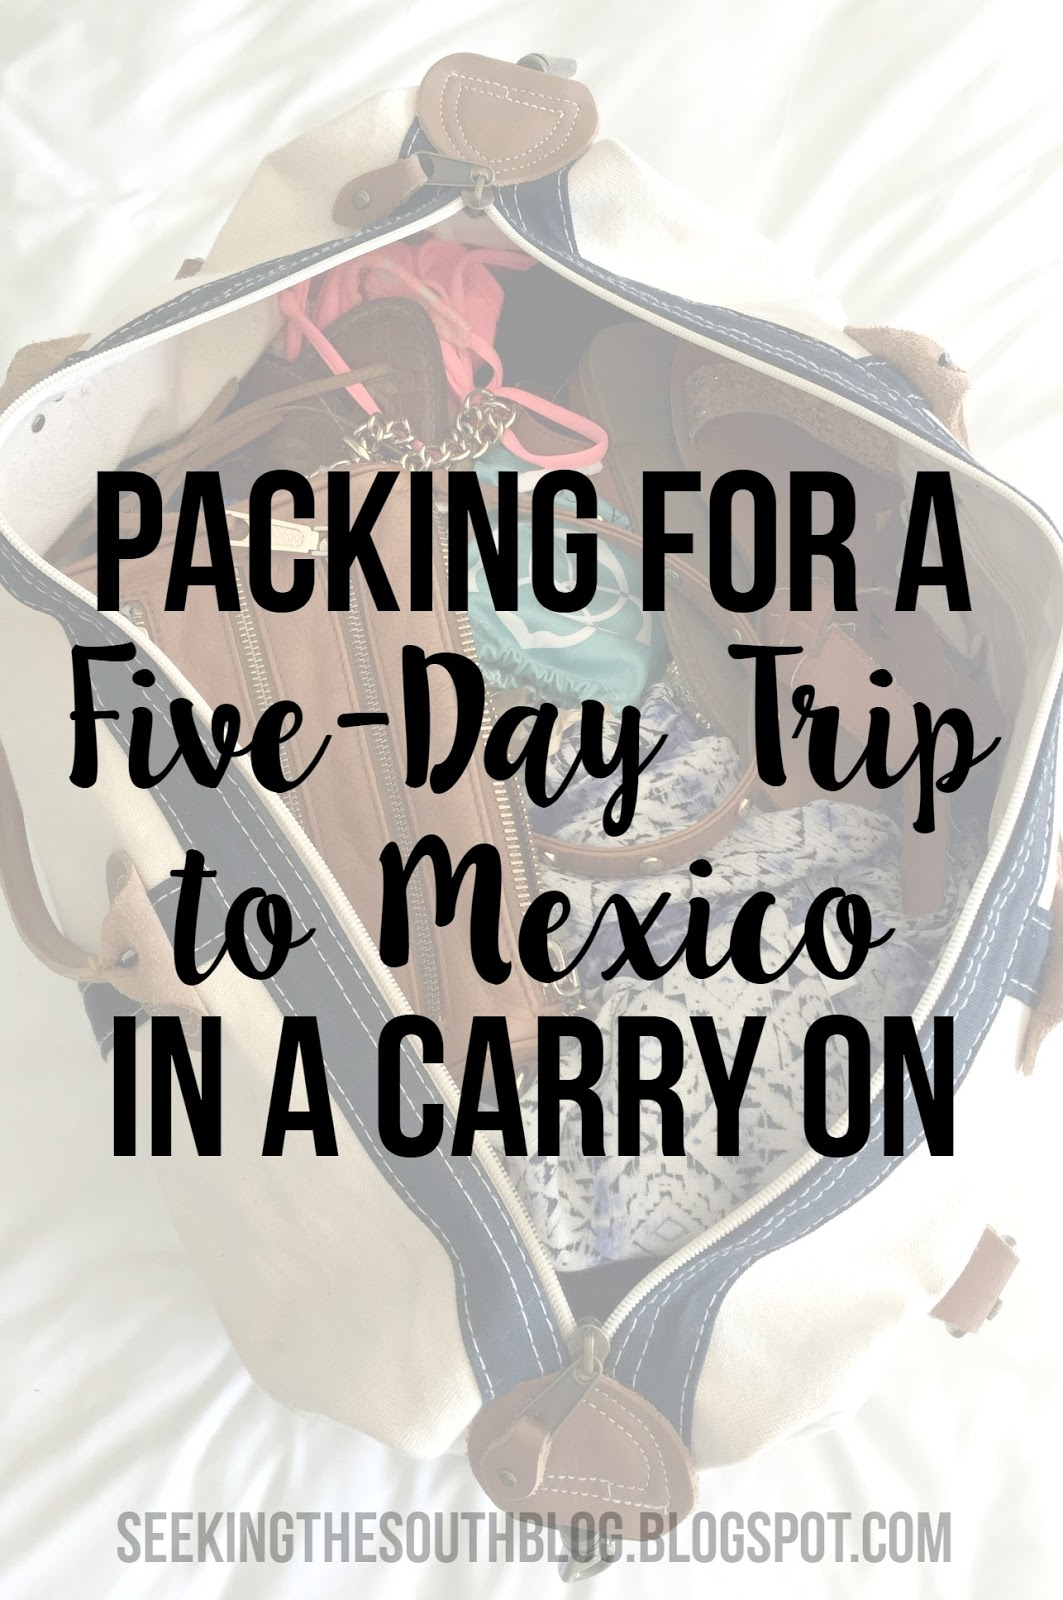 Packing for a Five-Day Trip to Mexico in a Carry On